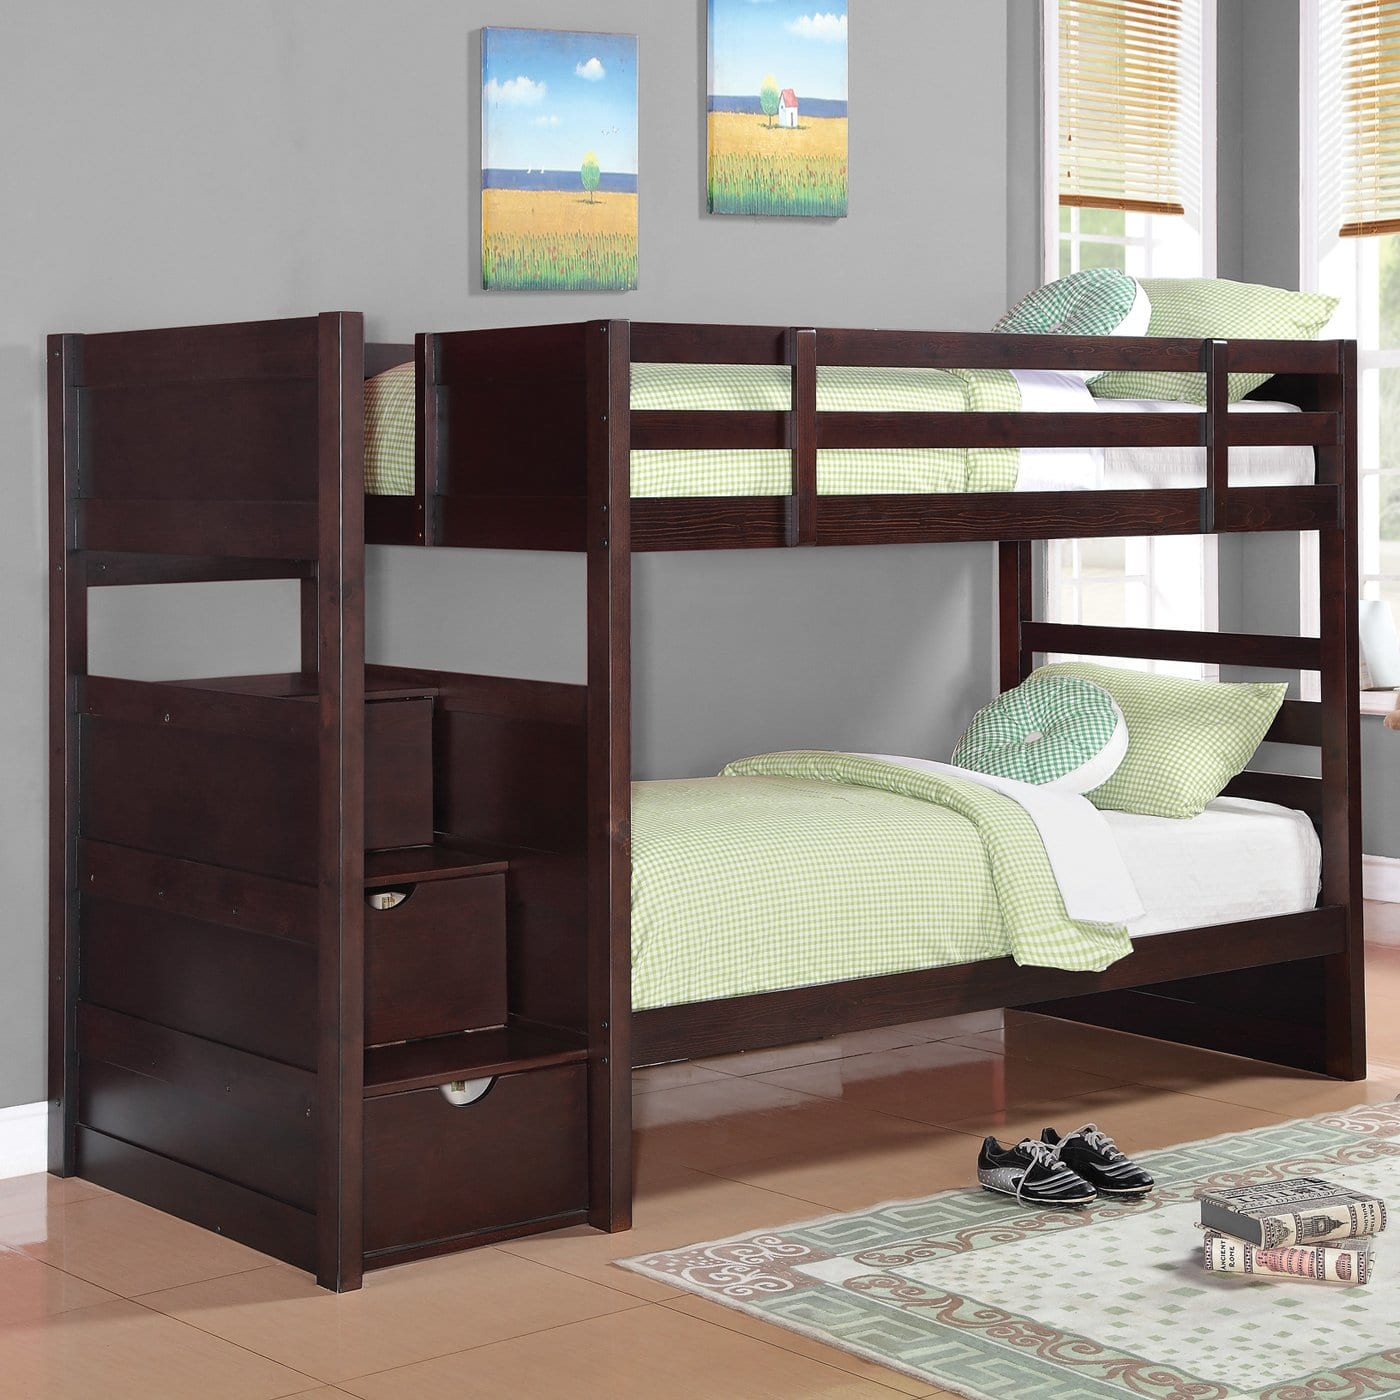 Coaster Elliott bunk bed, twin over twin in cappuccino finish with stairway drawers.